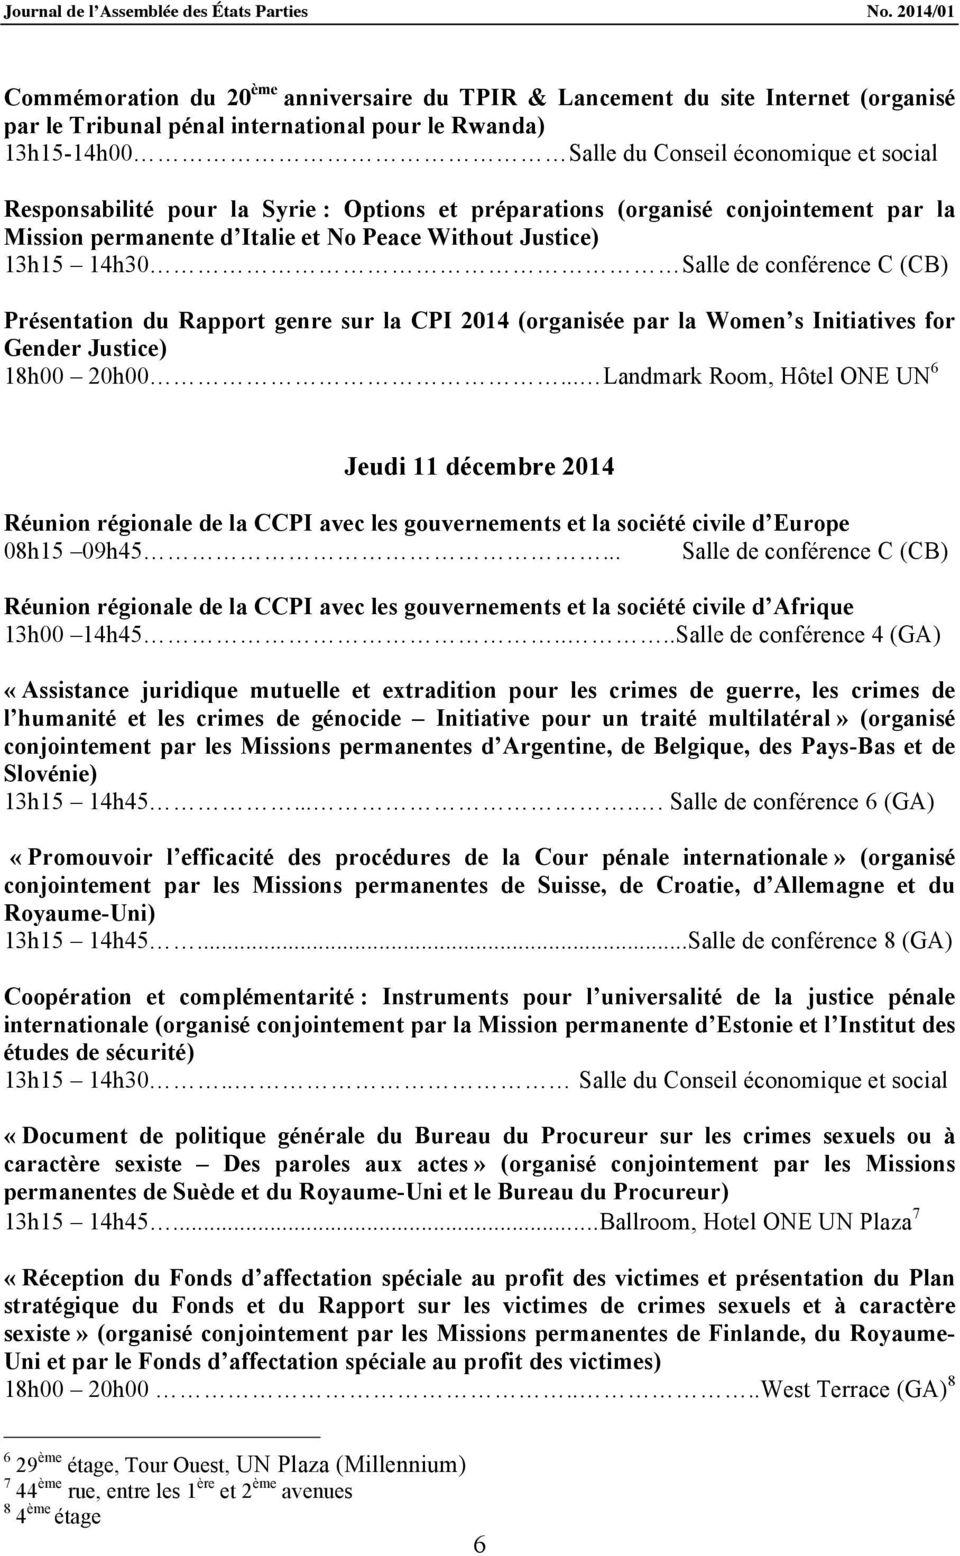 Rapport genre sur la CPI 2014 (organisée par la Women s Initiatives for Gender Justice) 18h00 20h00.